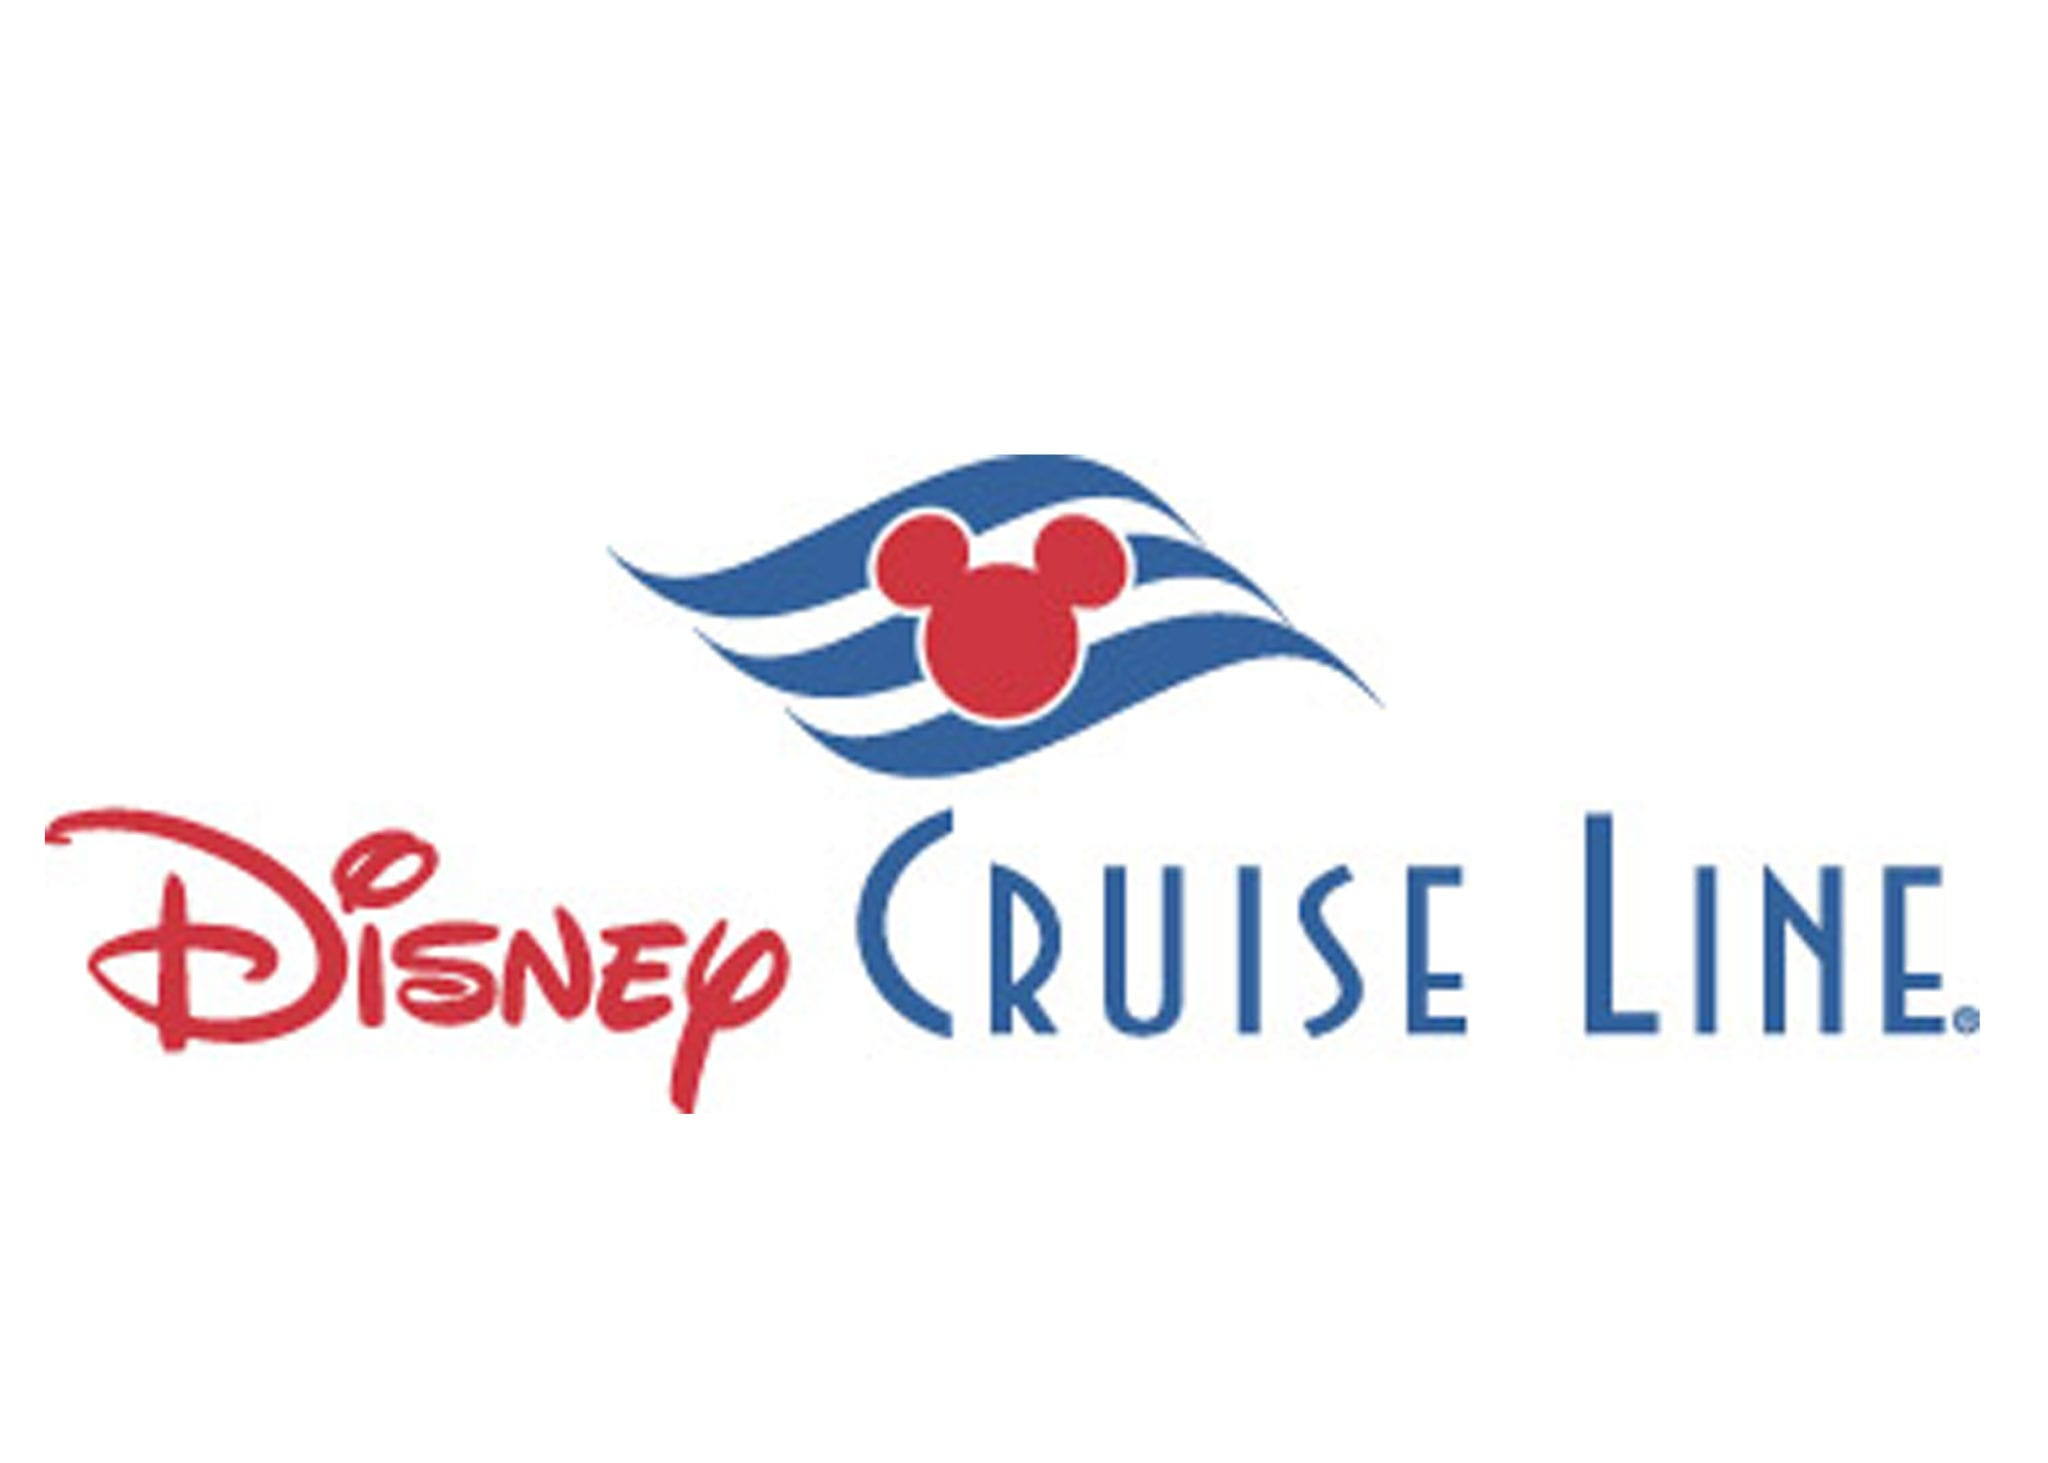 Get Disney Cruise Line Tips, DIY Crafts and More on Pinterest 5